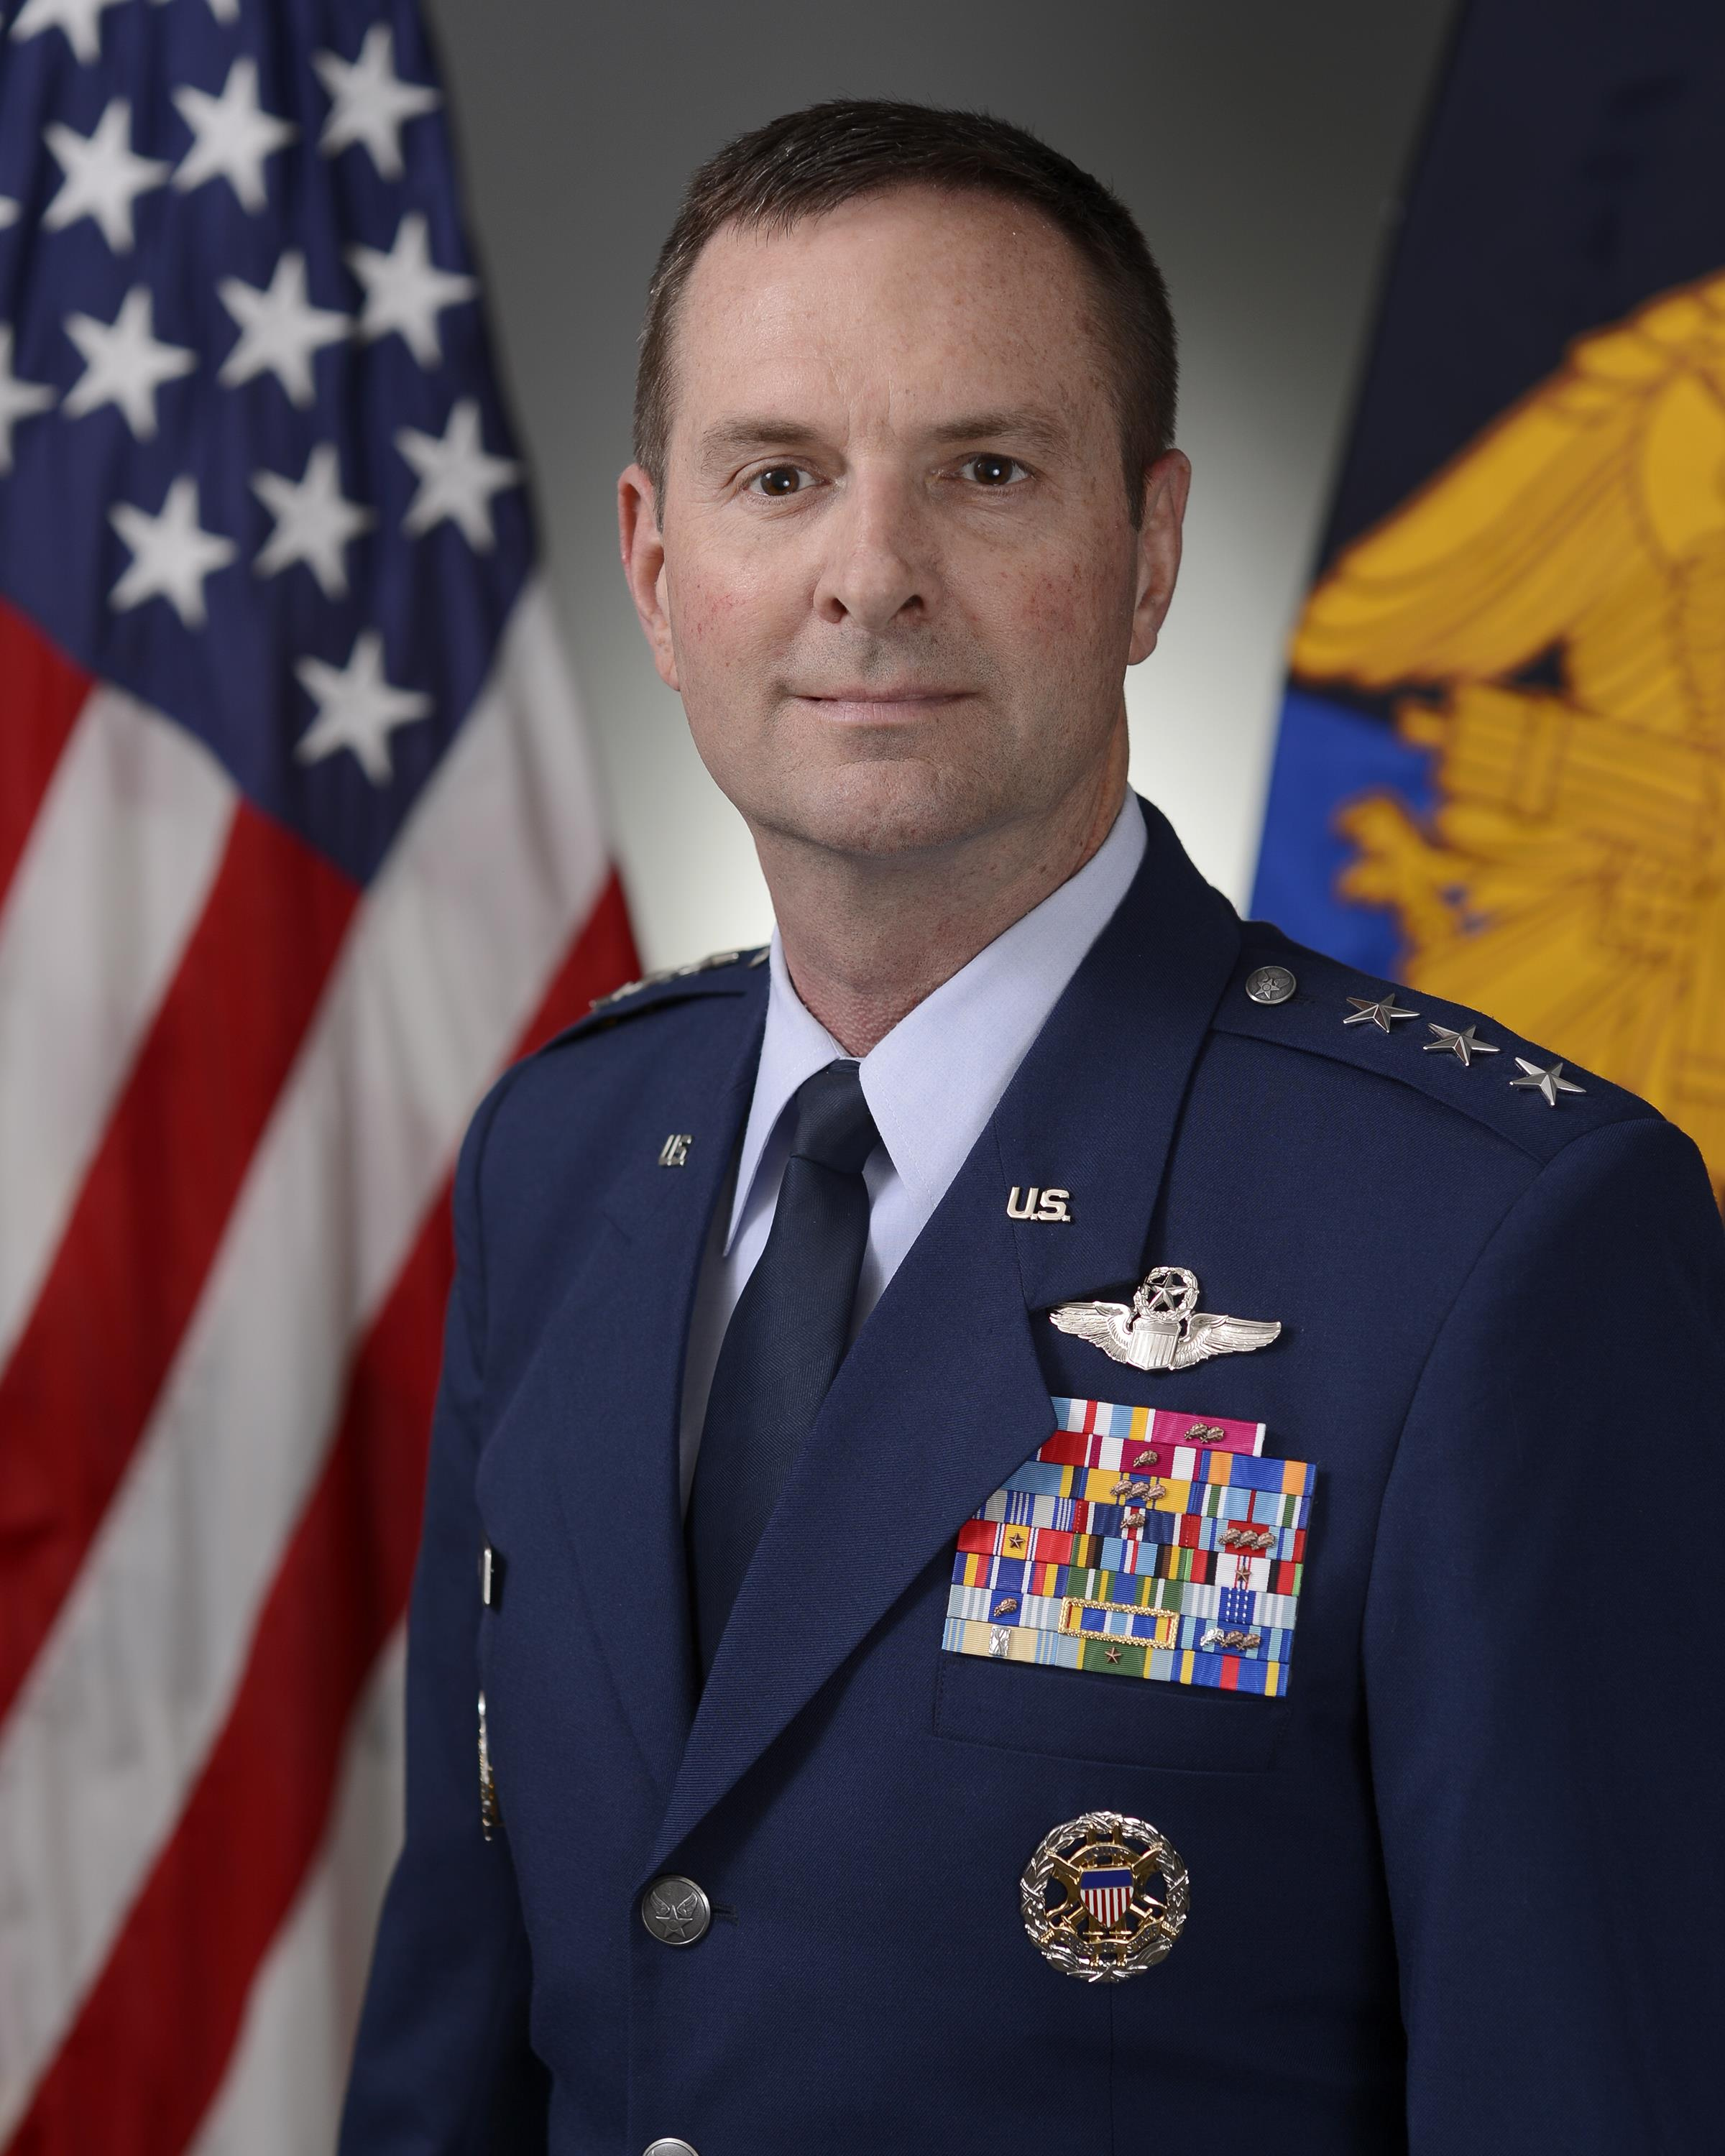 Carter praises national guard bureau chief nominee u s for Bureau chief